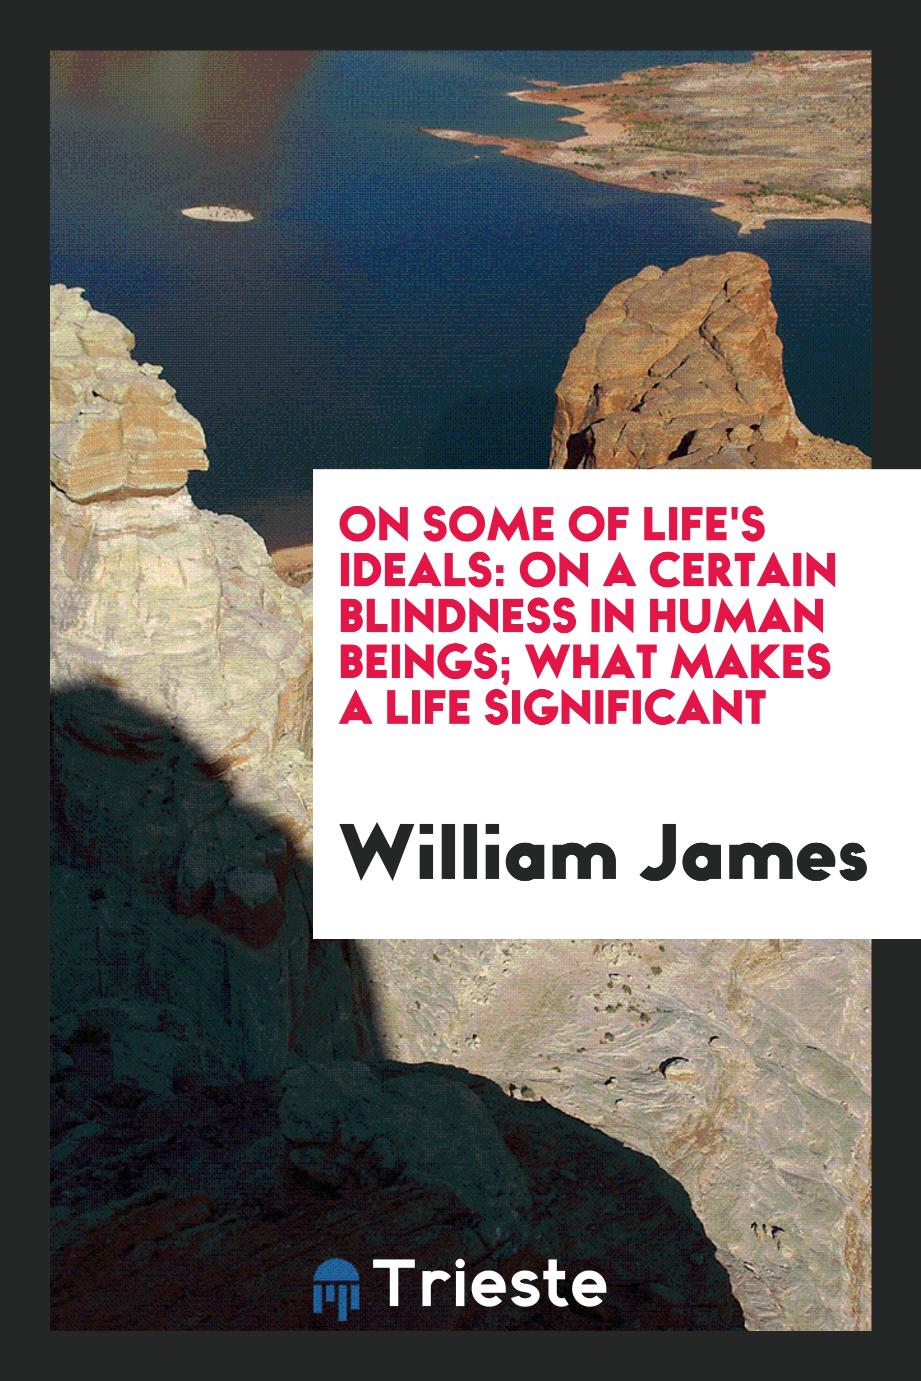 On Some of Life's Ideals: On a Certain Blindness in Human Beings; What Makes a Life Significant